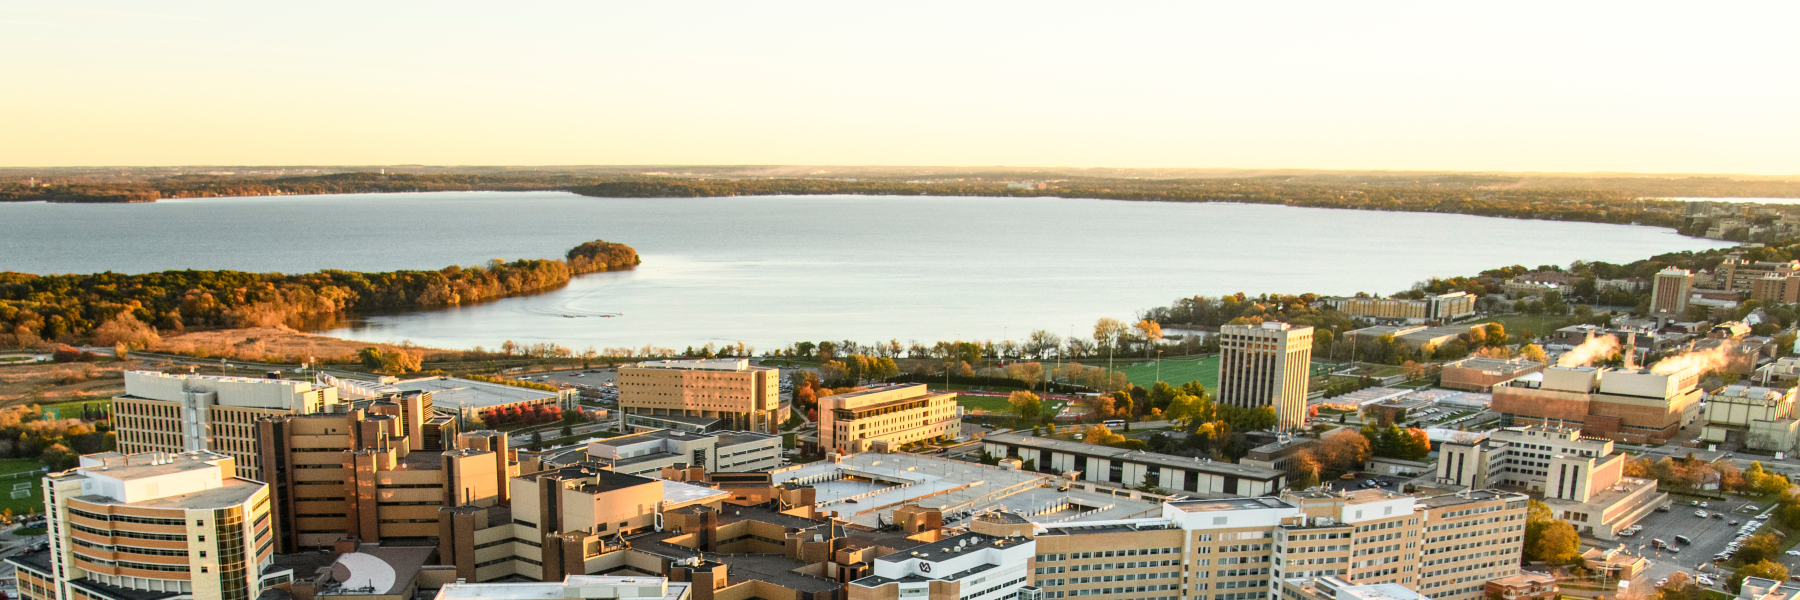 UW Hospital Complex and Lake Mendota aerial view